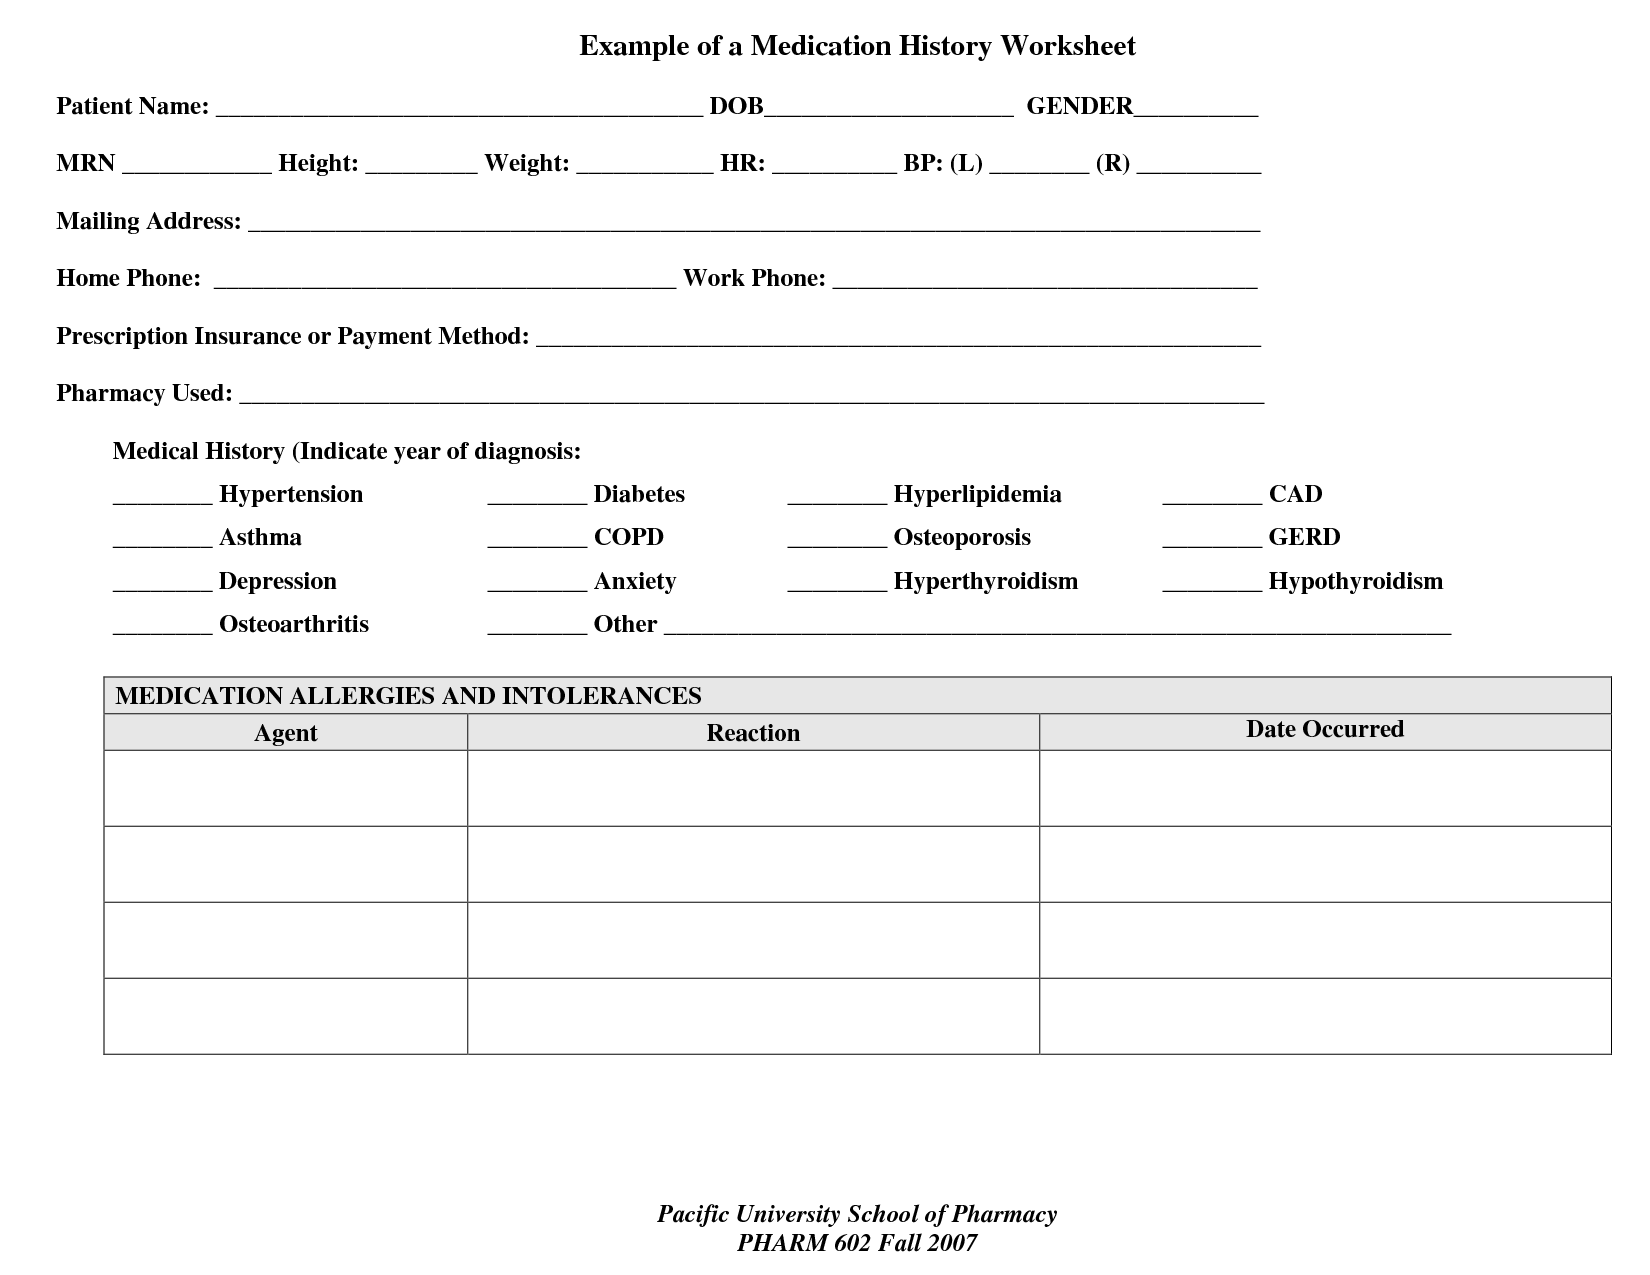 Medication Management Worksheets For Adults Pictures To Pin